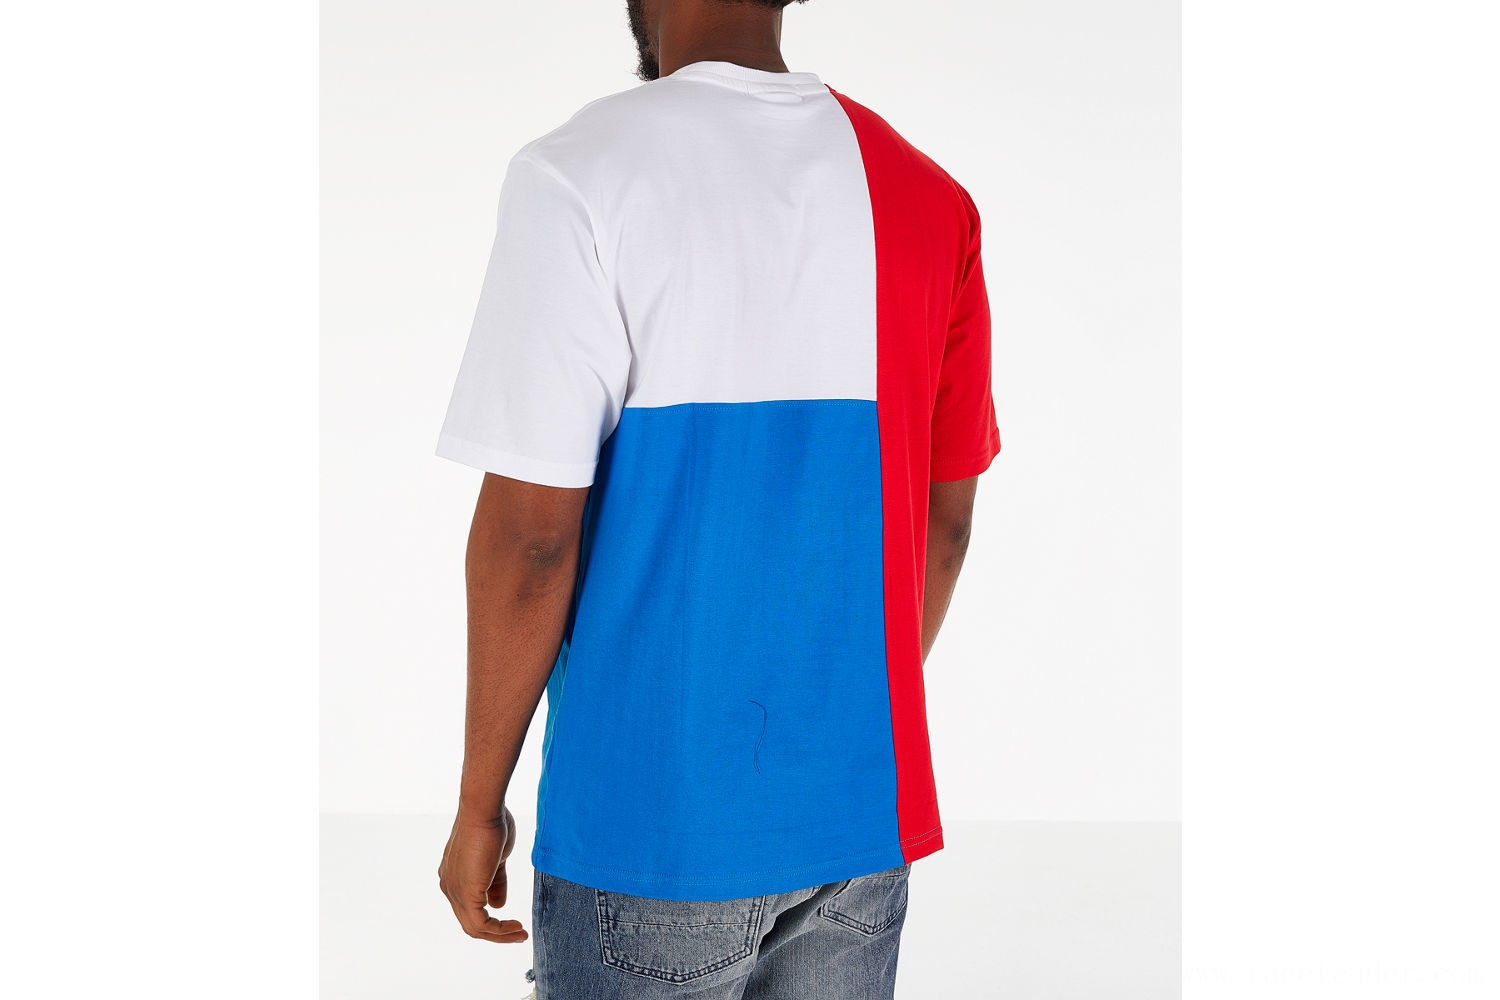 Fila Men's Indo T-Shirt - Red/White/Blue